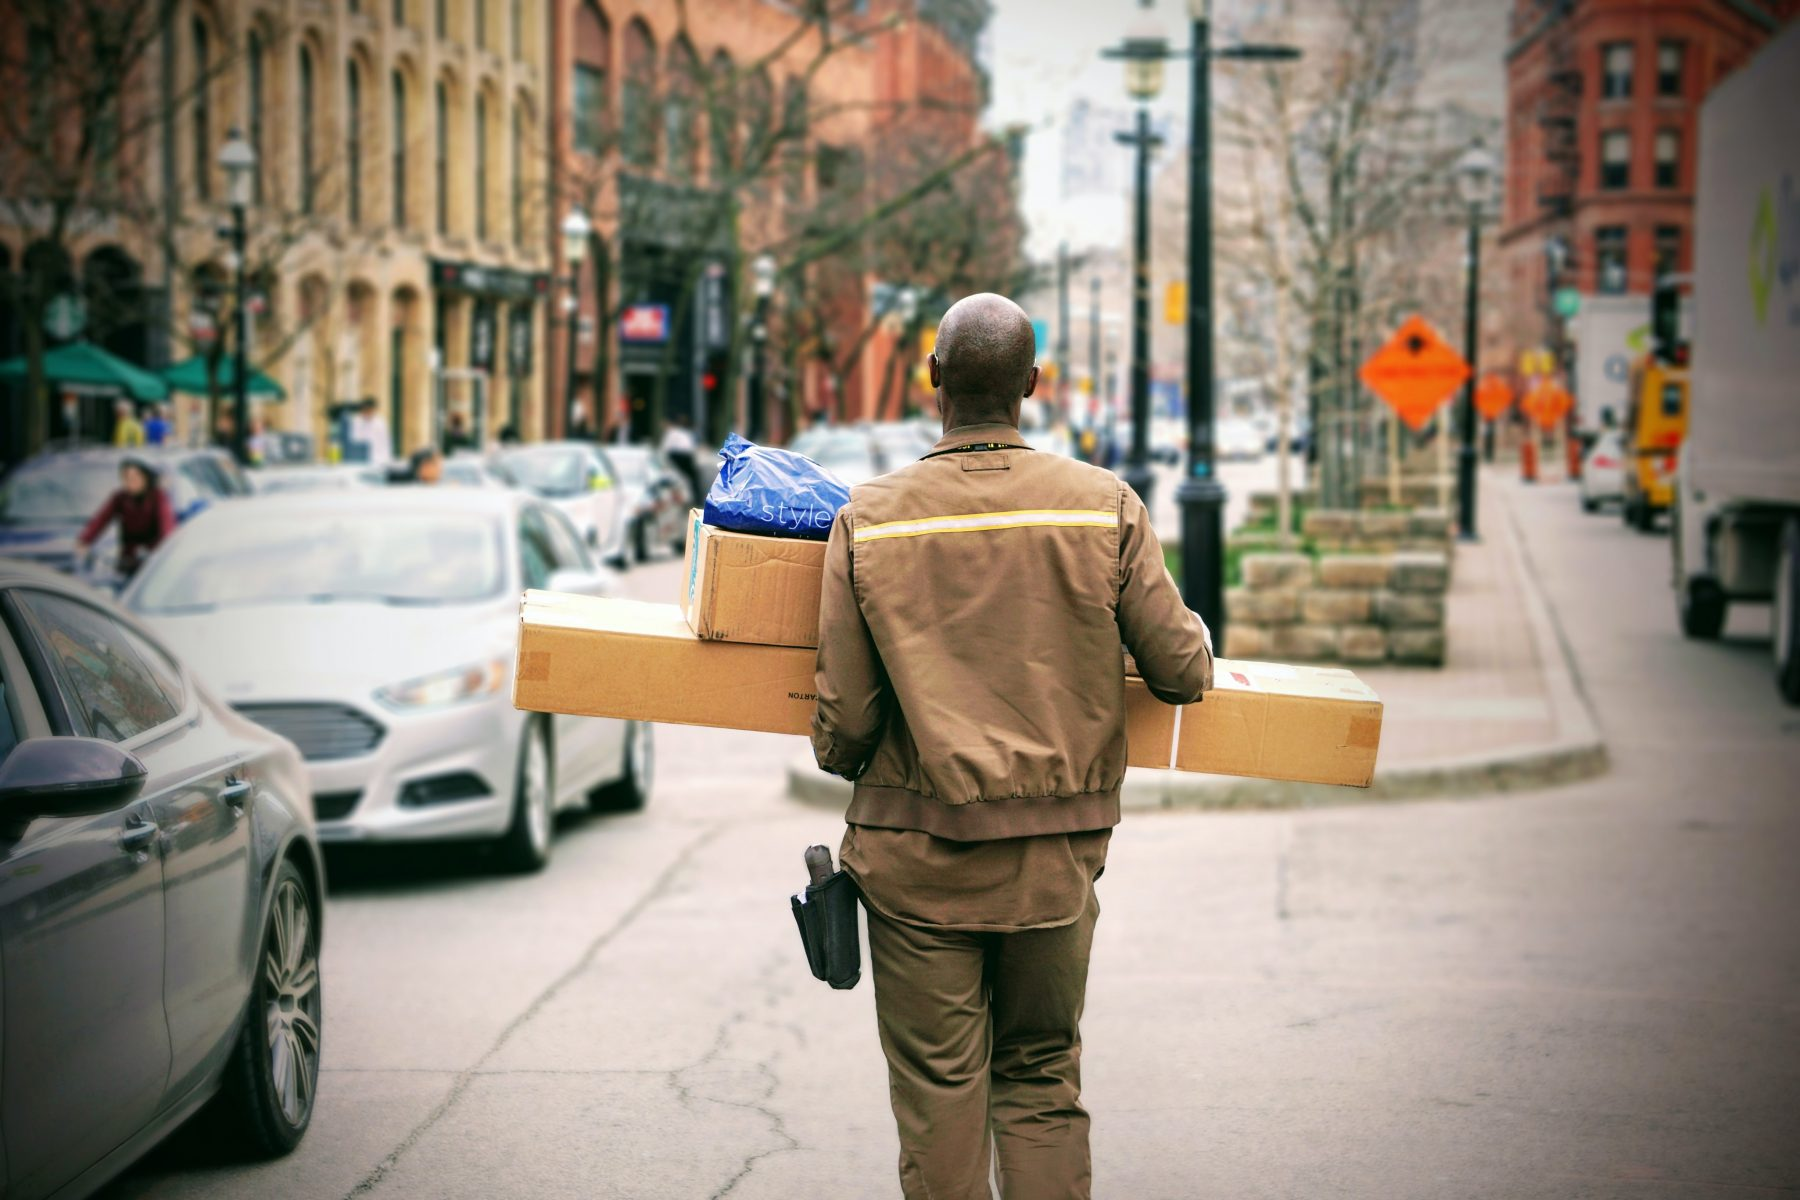 working as a delivery driver